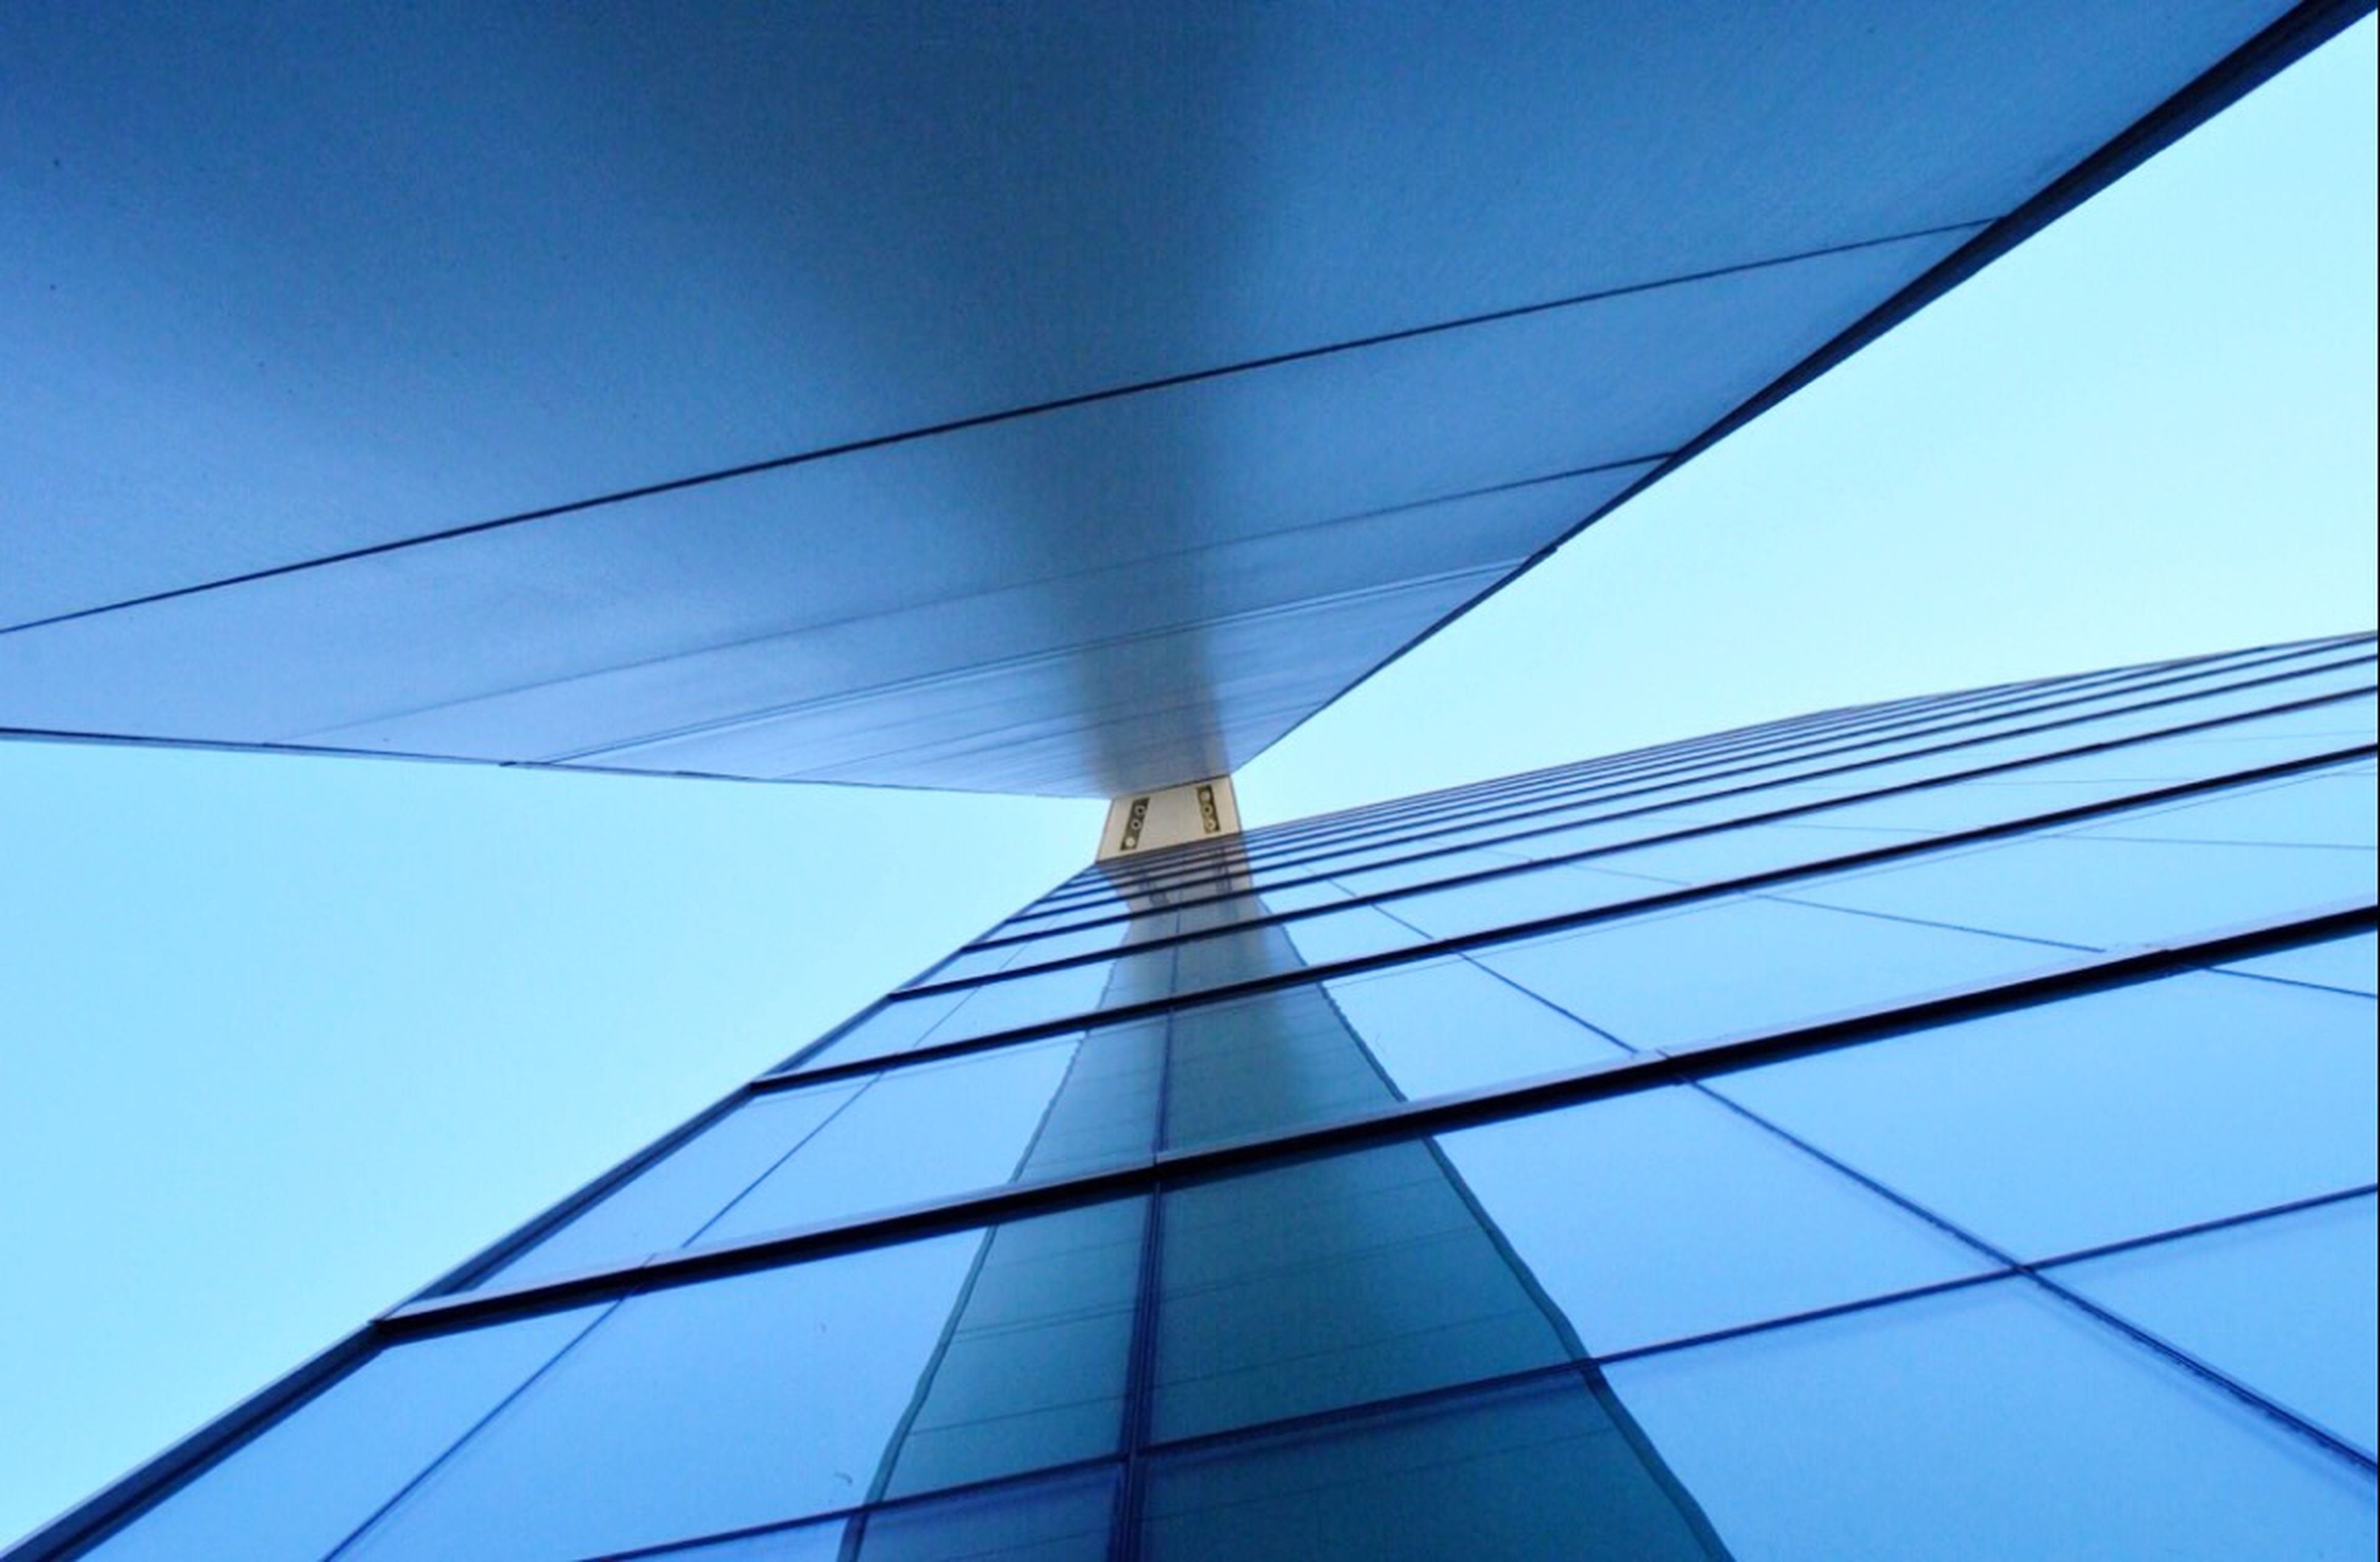 low angle view, architecture, built structure, blue, clear sky, modern, building exterior, office building, connection, sky, tall - high, day, city, outdoors, no people, cable, building, glass - material, tower, reflection